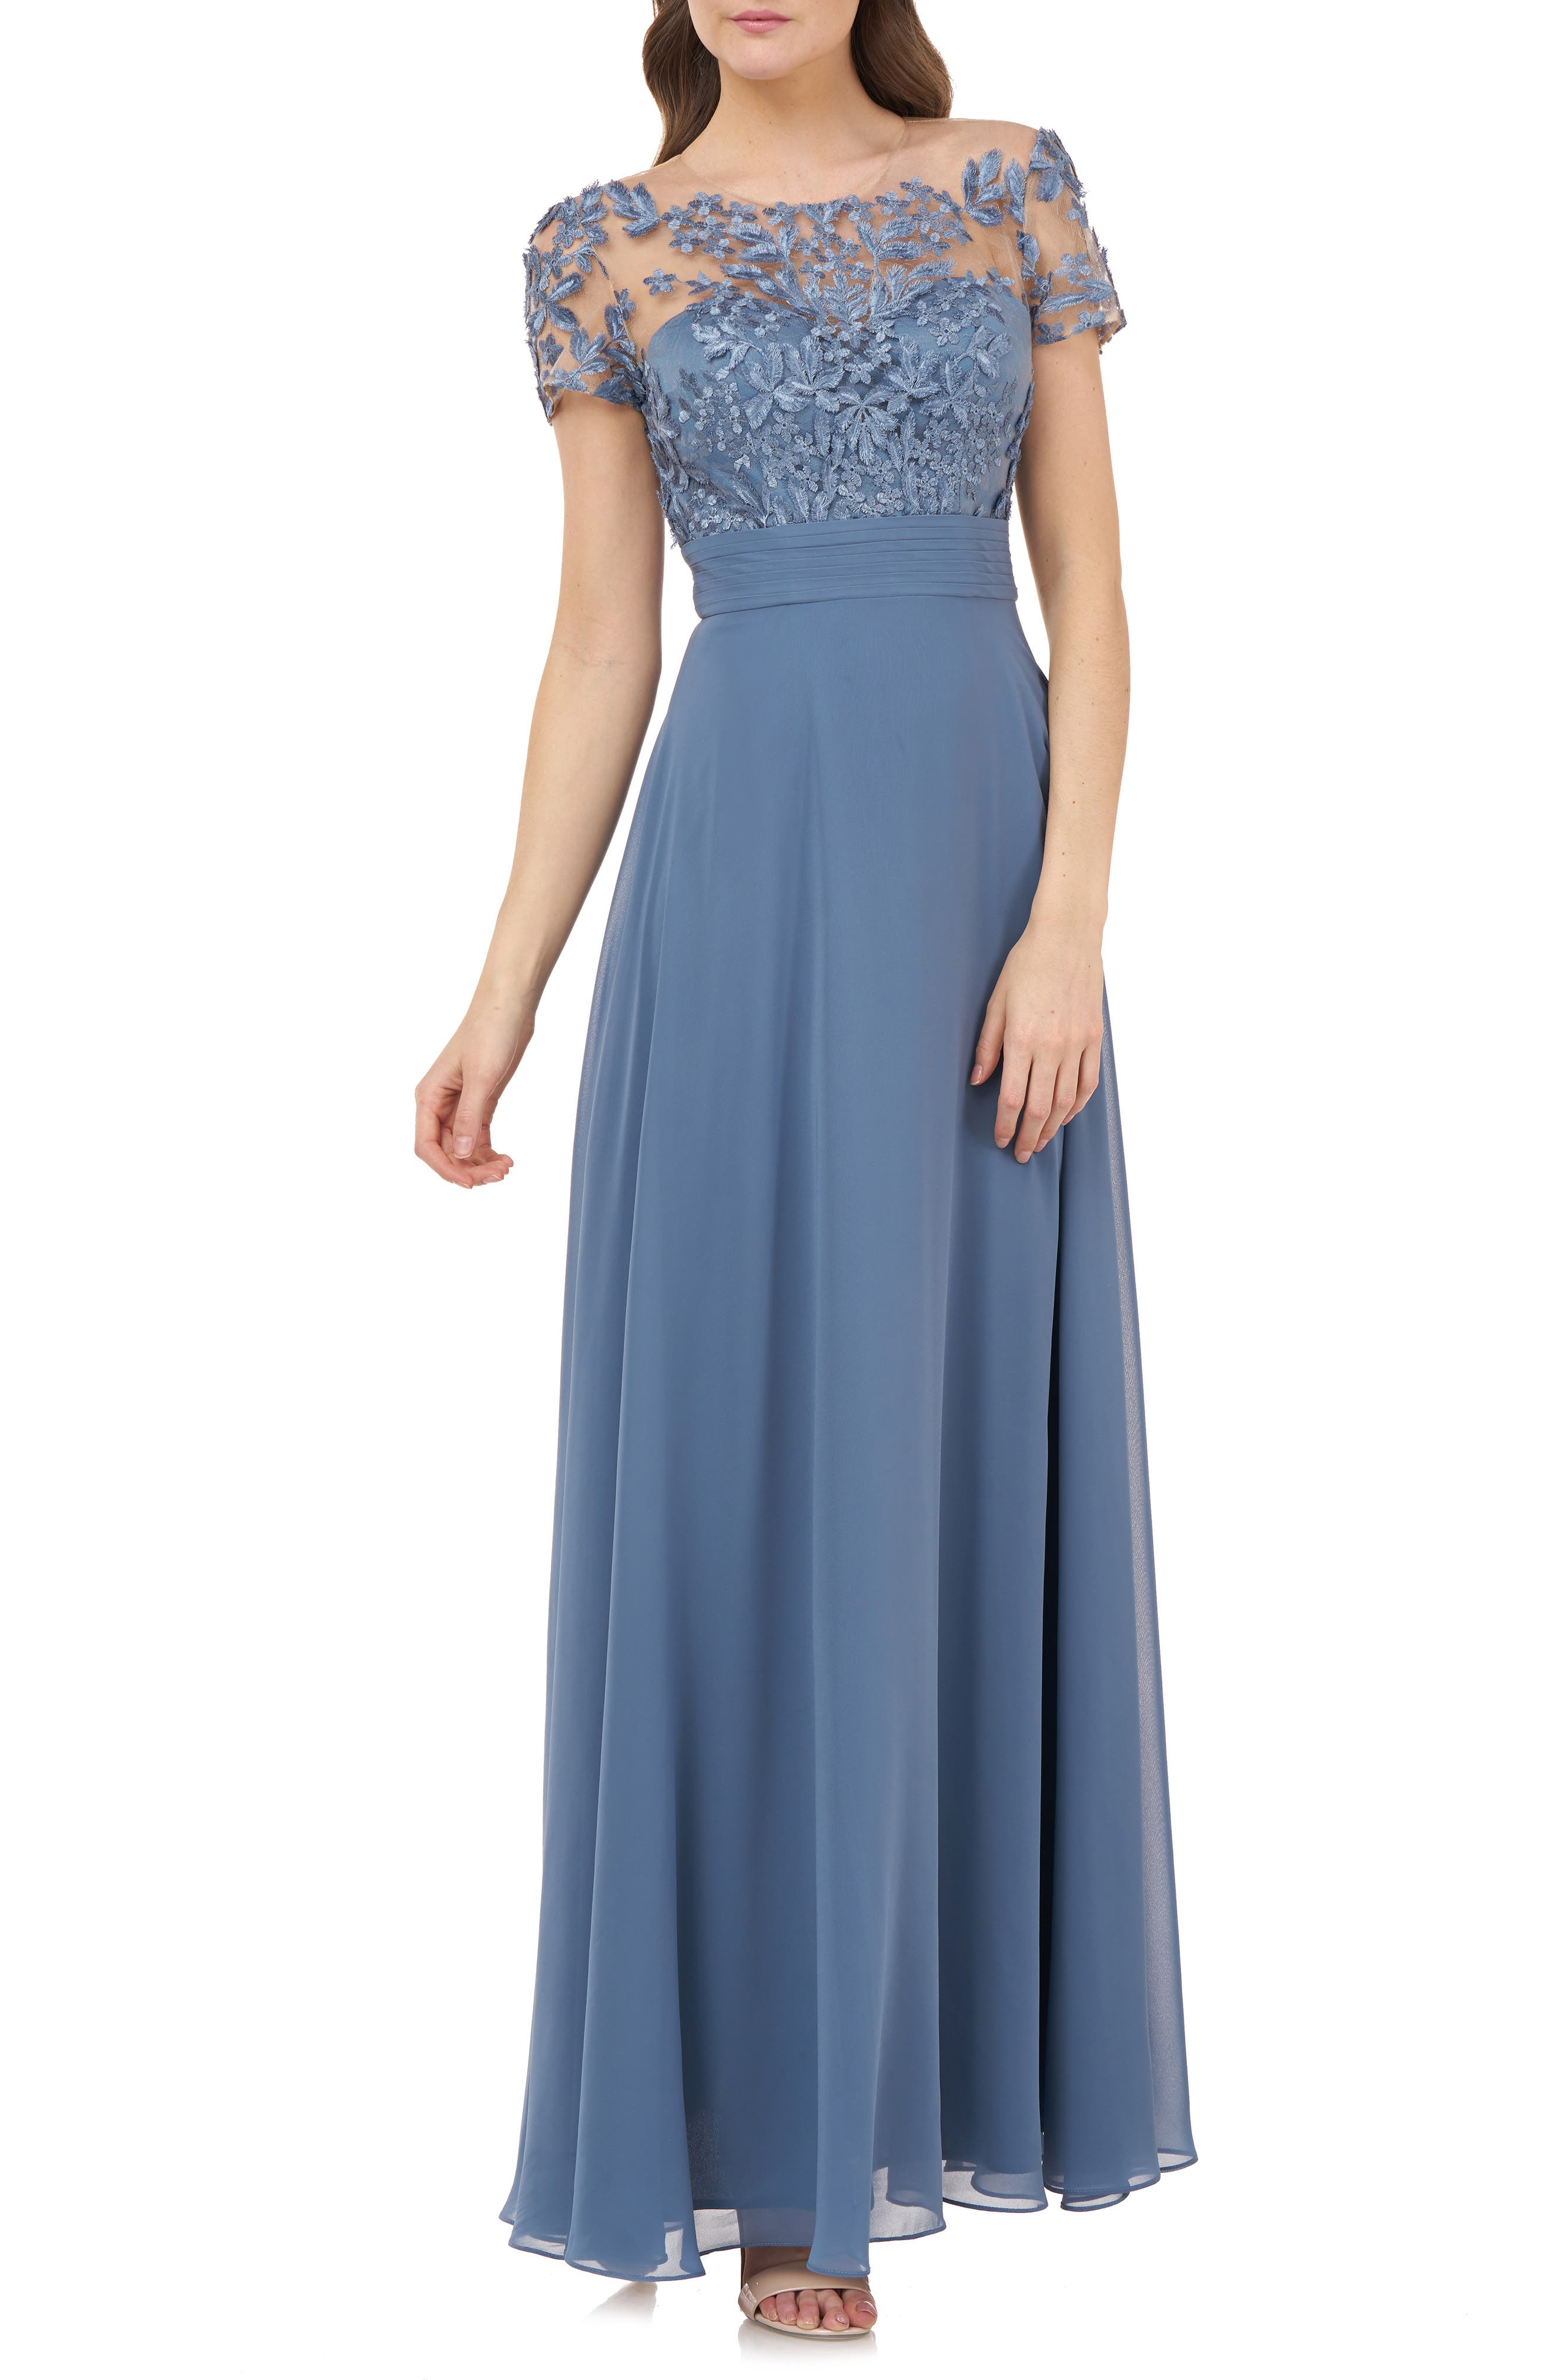 Sprightly floral embroidery floats atop the delicate illusion bodice topping this soft and elegant A-line gown. Style Name: Js Collections Embroidered A-Line Gown. Style Number: 5518159. Available in stores.